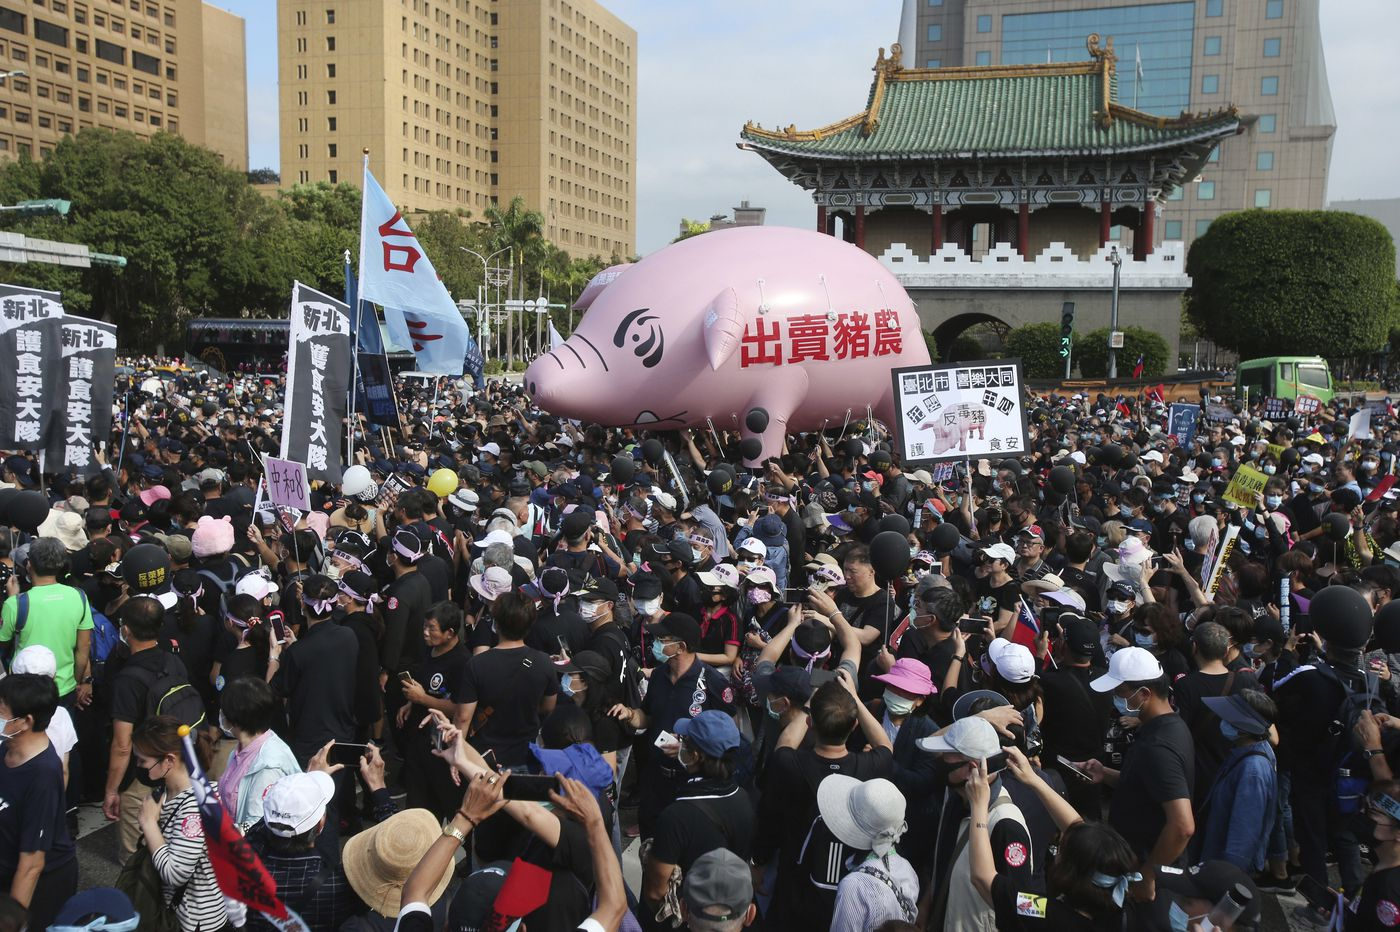 Thousands march in streets in Taiwan against U.S. pork imports